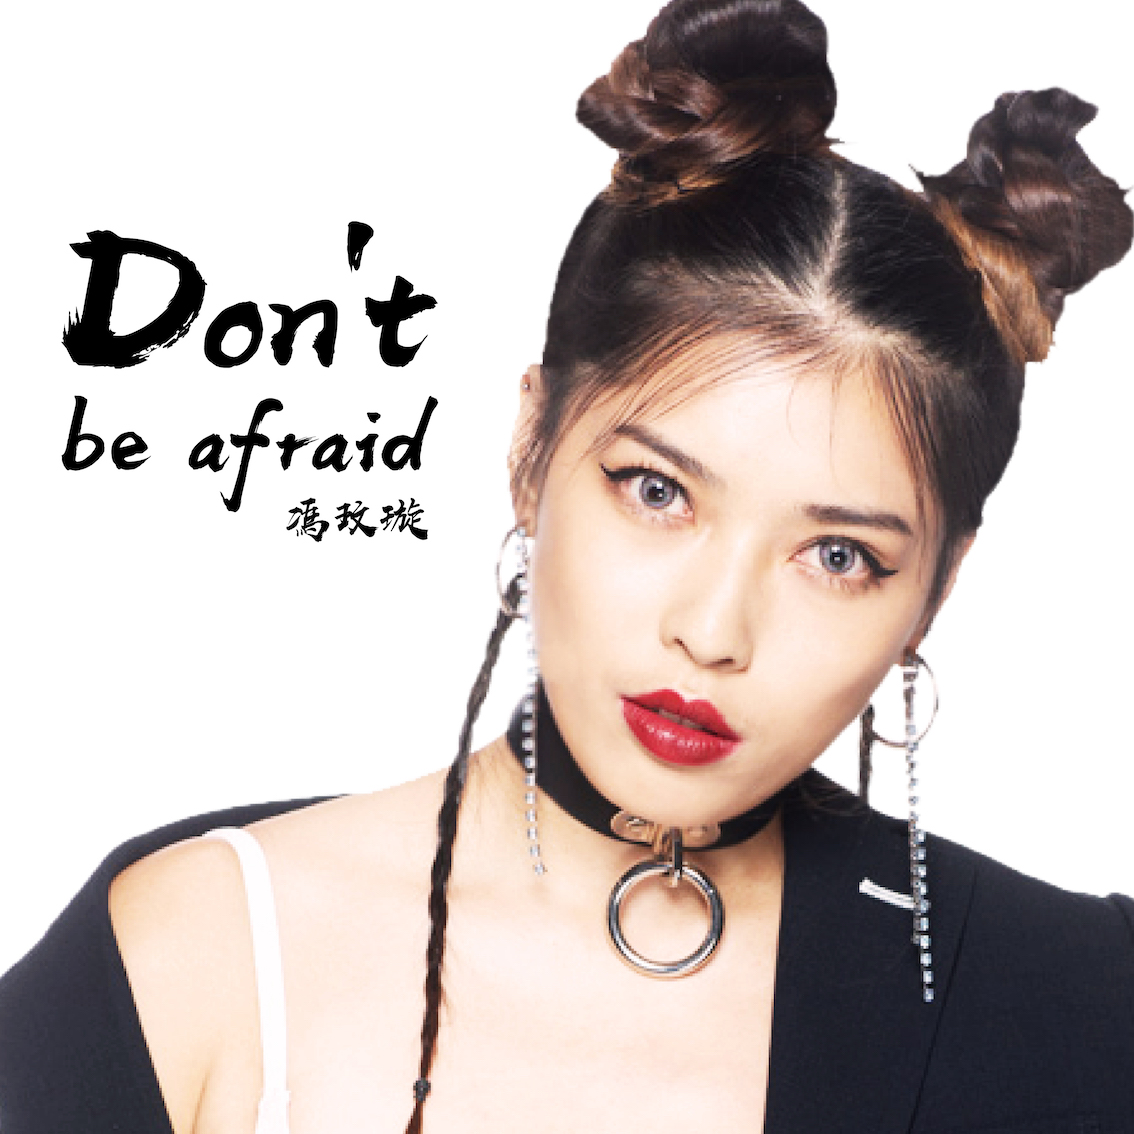 冯玟璇:Don't be afraid